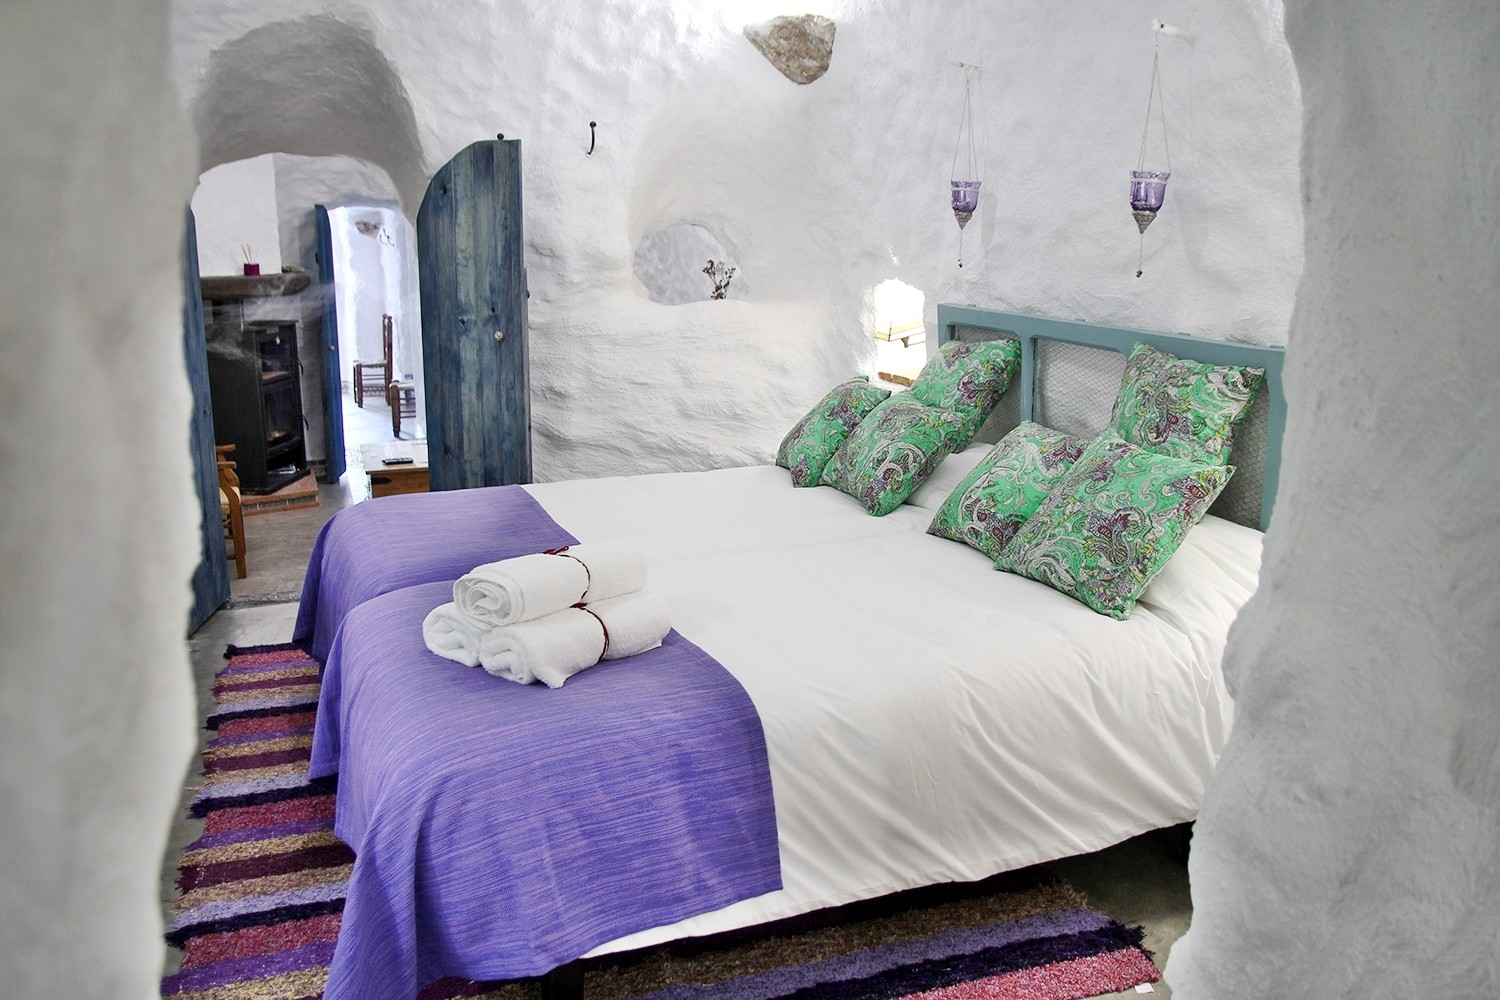 A Luxury Restored Cave House